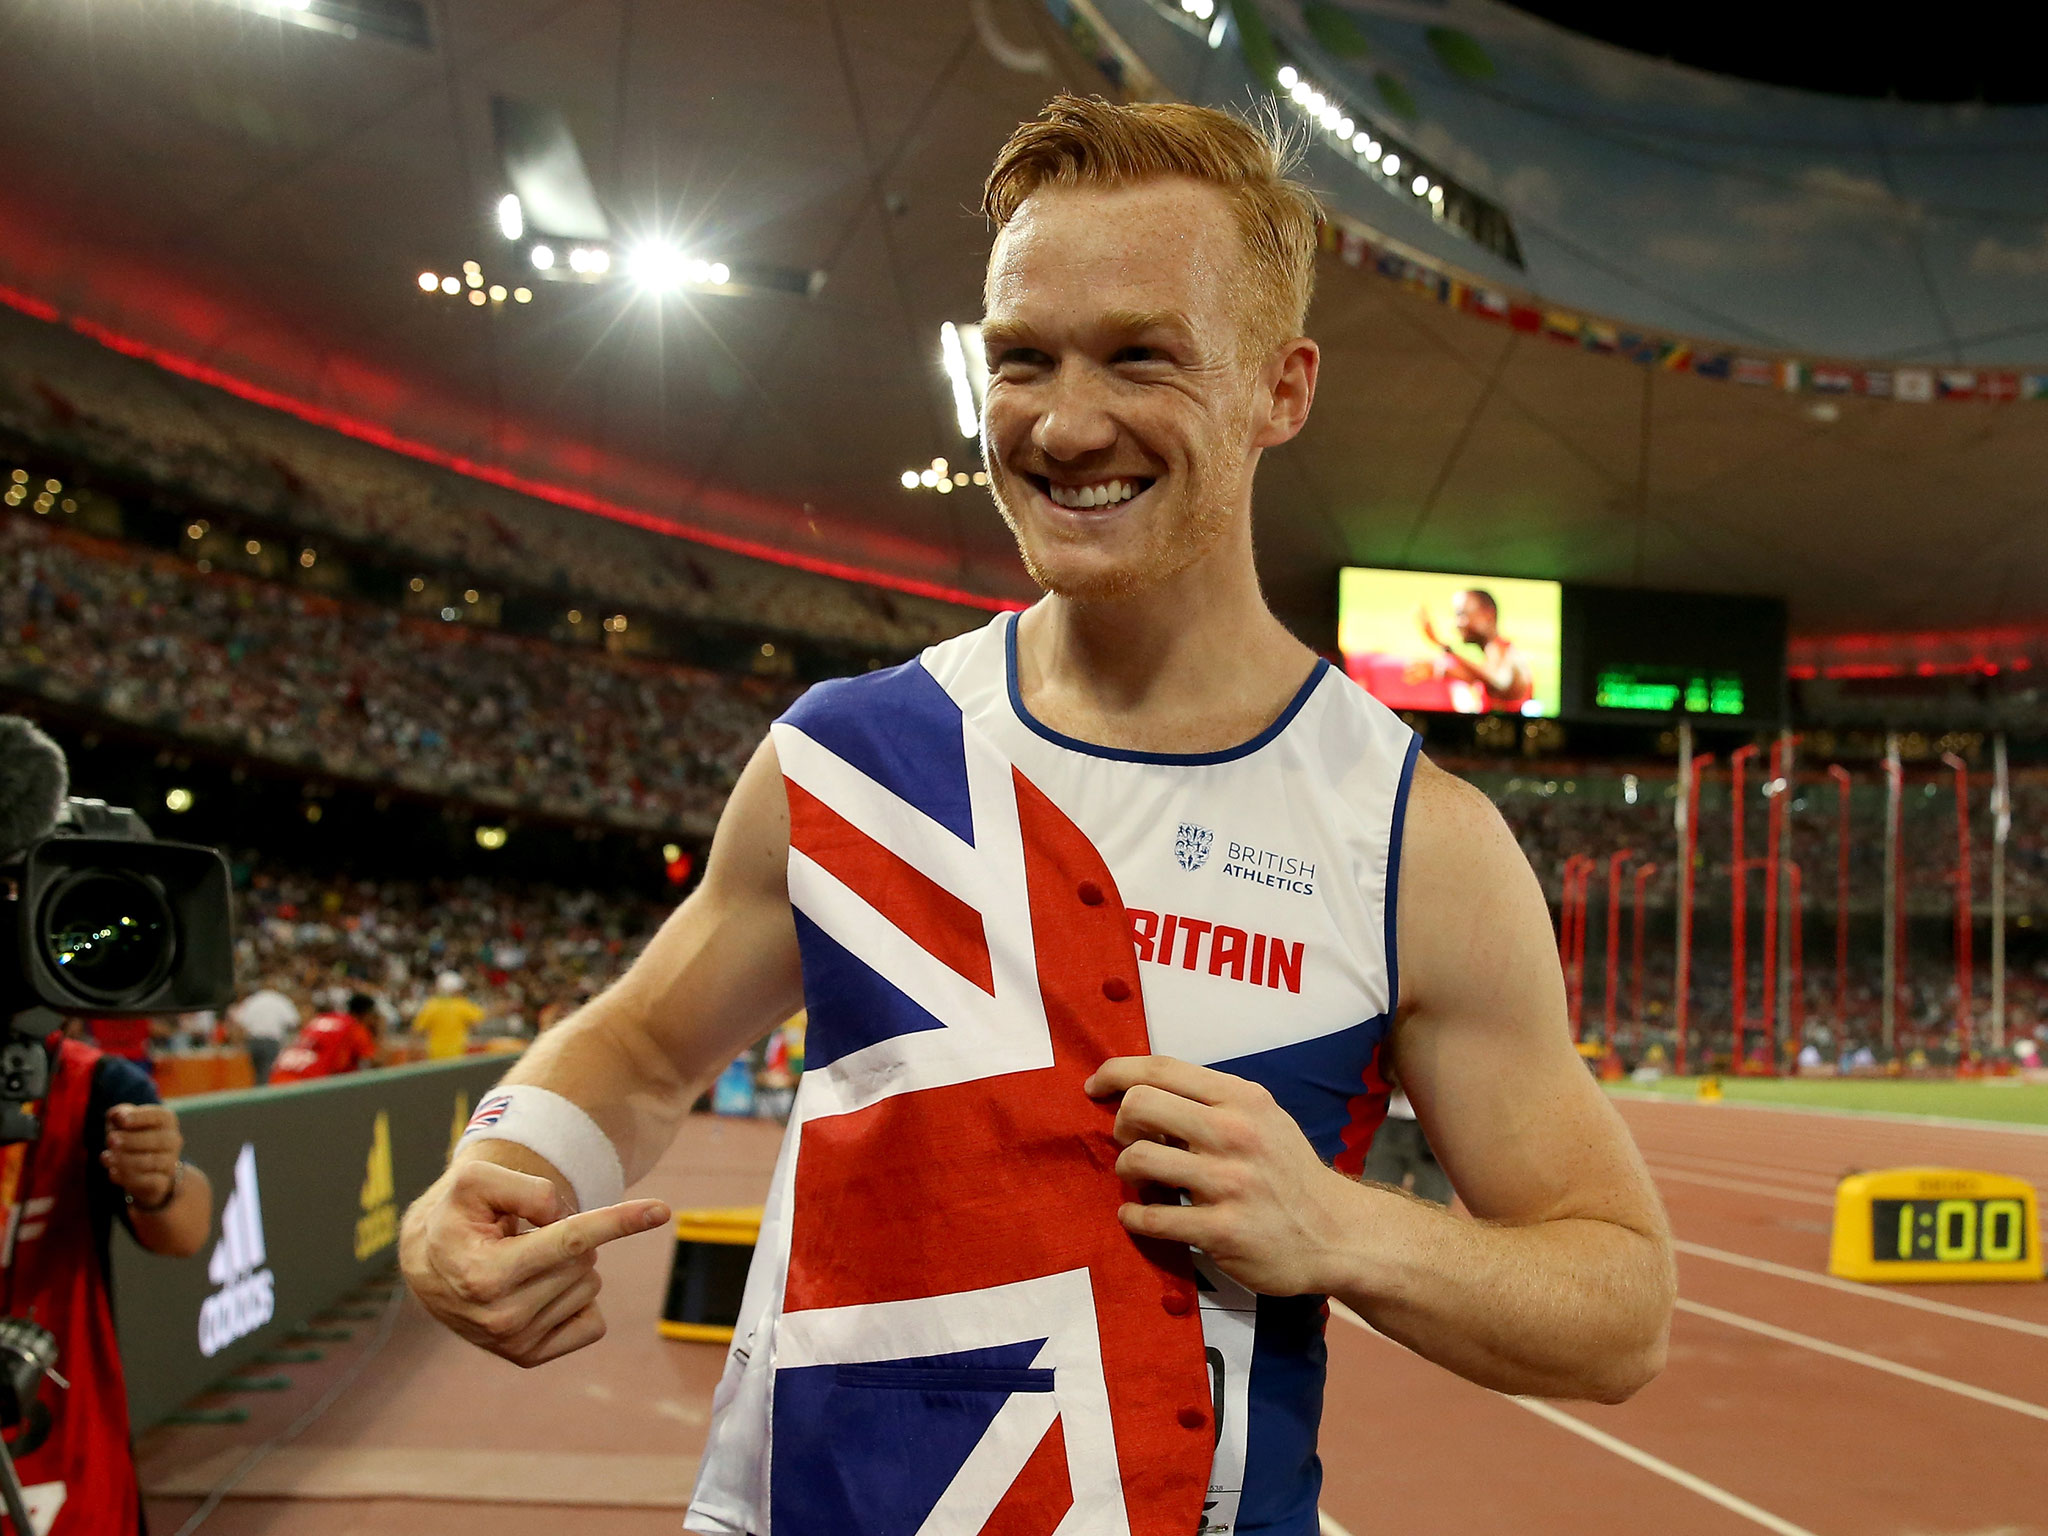 2048x1536 - Greg Rutherford Wallpapers 17